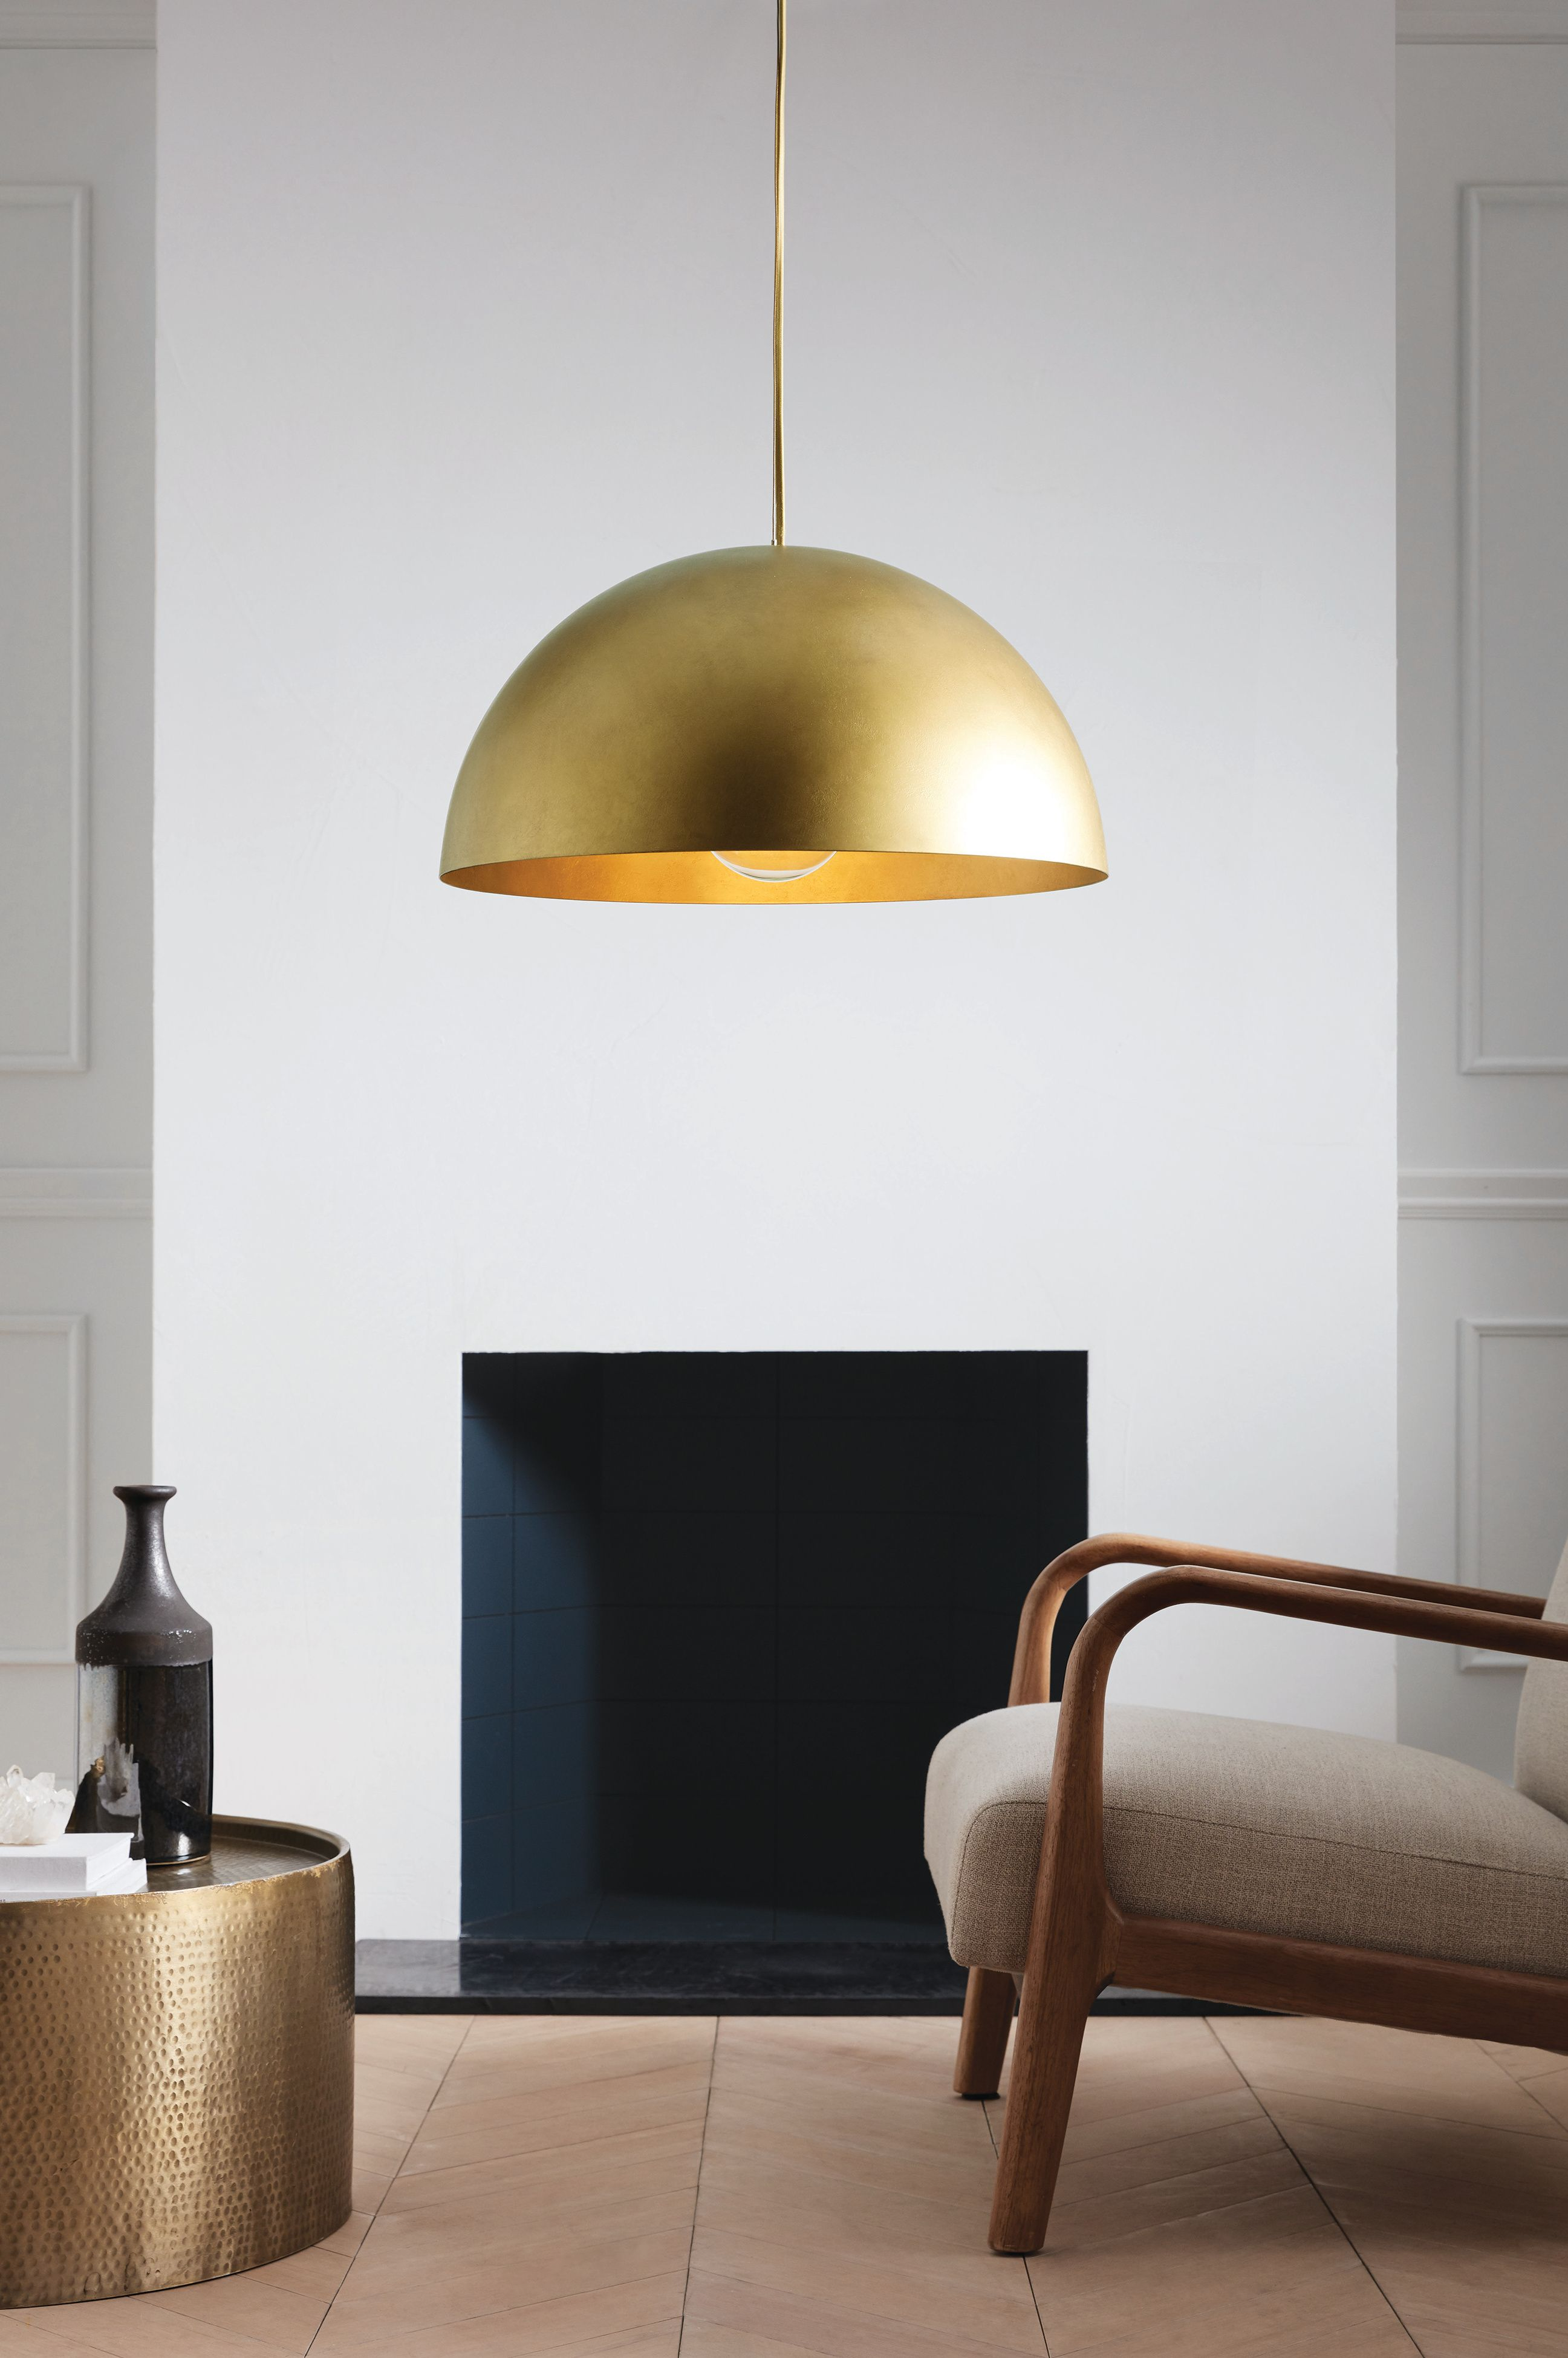 Leanne Ford's Target Collection Is Full of Amazing Lighting Options #leannefordinteriors